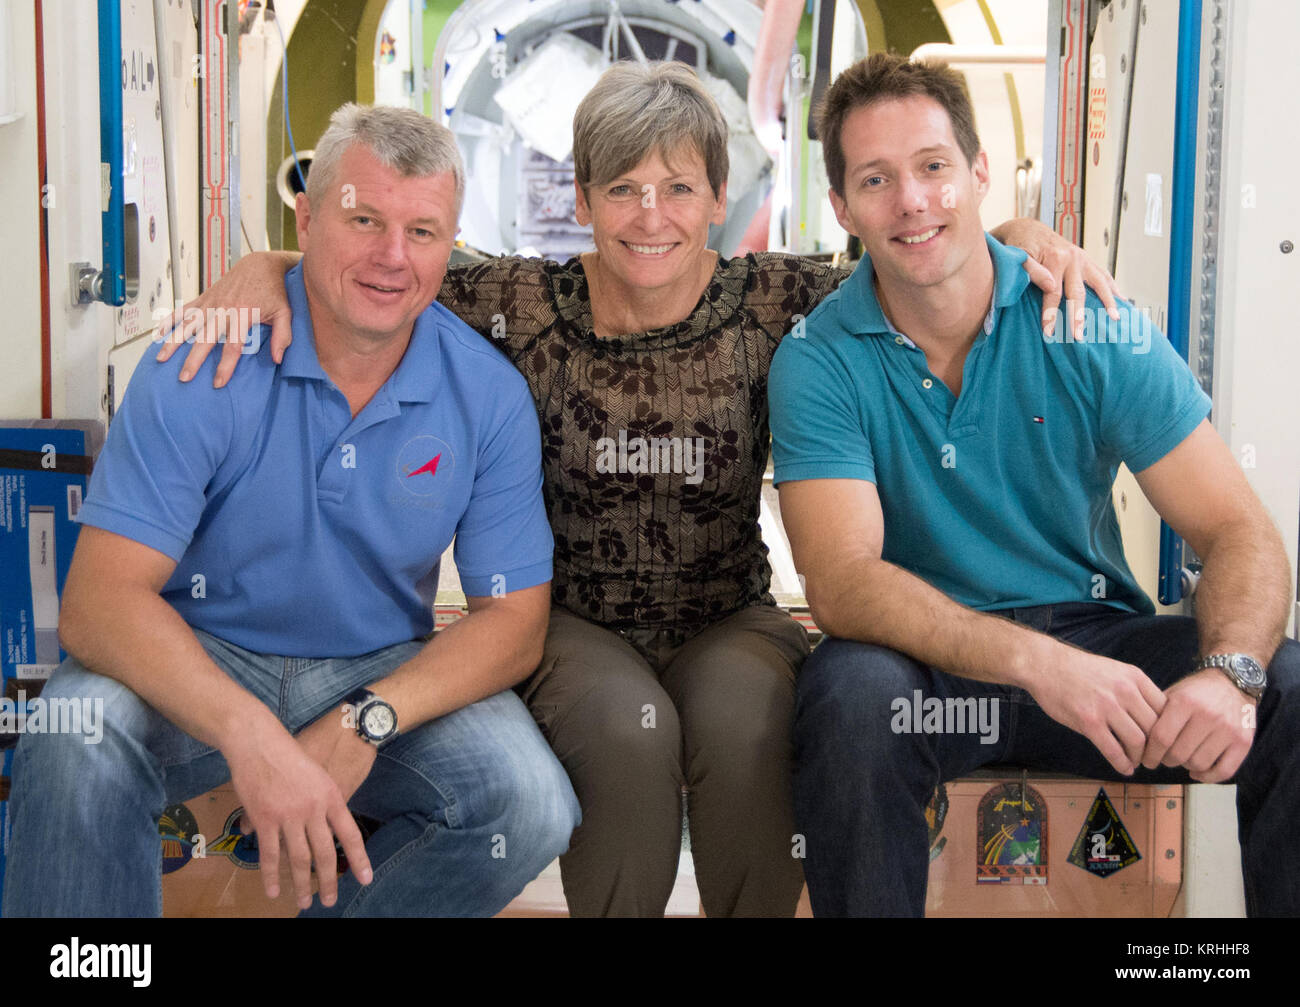 Date: 09-14-15 Location: Bldg 9, ISS Mockups Subject: Expedition 50/51 crew members Peggy Whitson, Thomas Pesquet - Stock Image